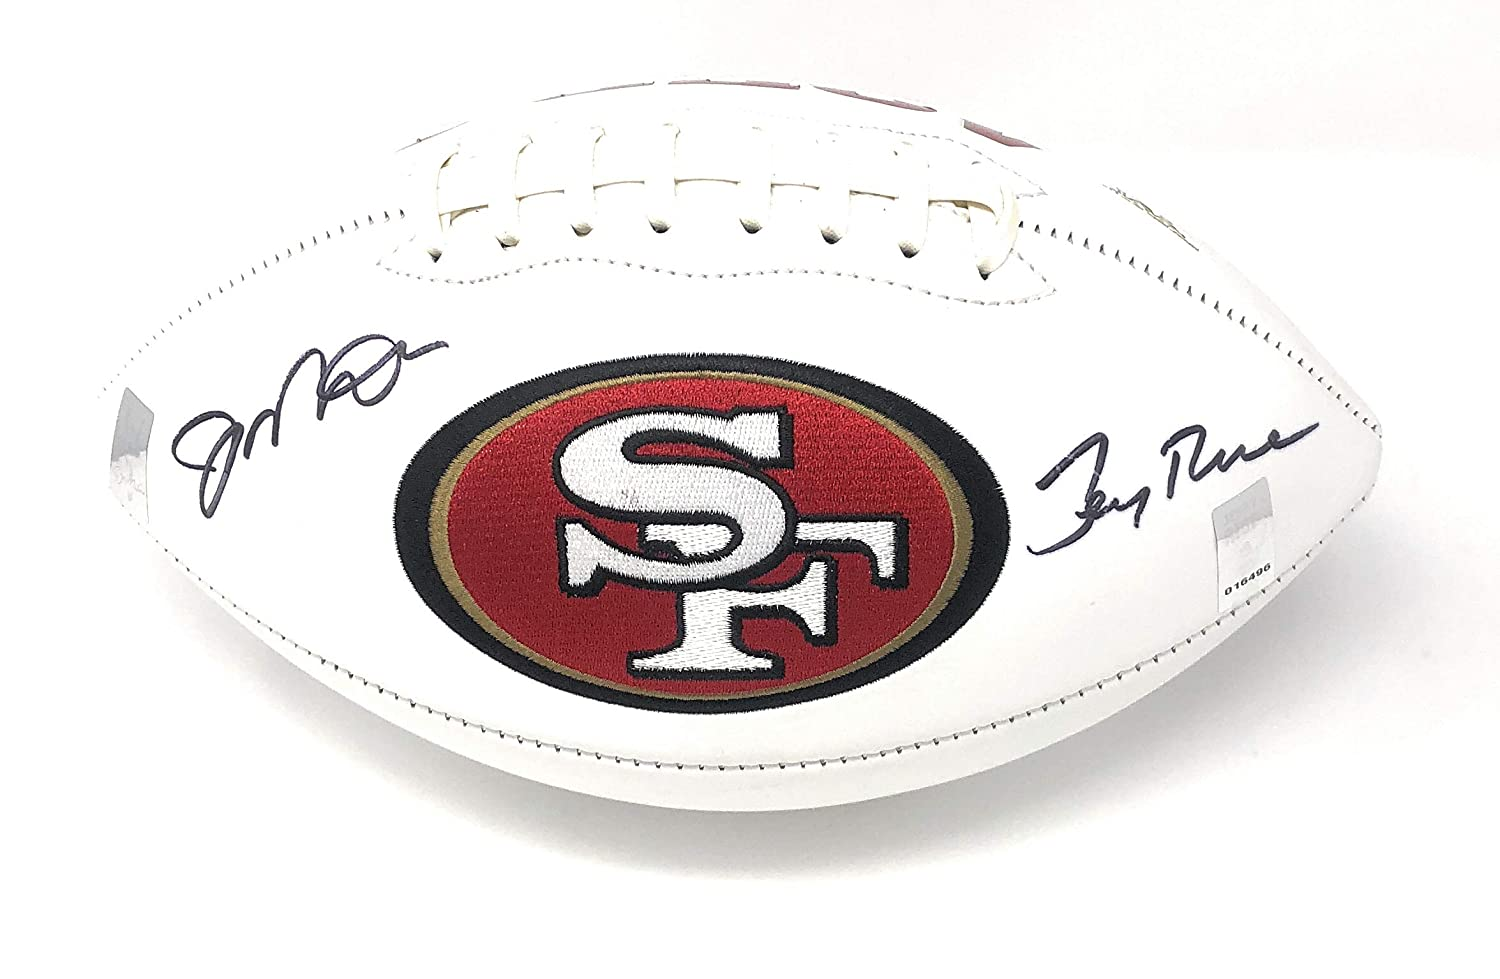 Joe Montana Jerry Rice San Franciso 49ers Dual Signed Autograph Embroidered Logo Football GTSM Dual Player Holograms